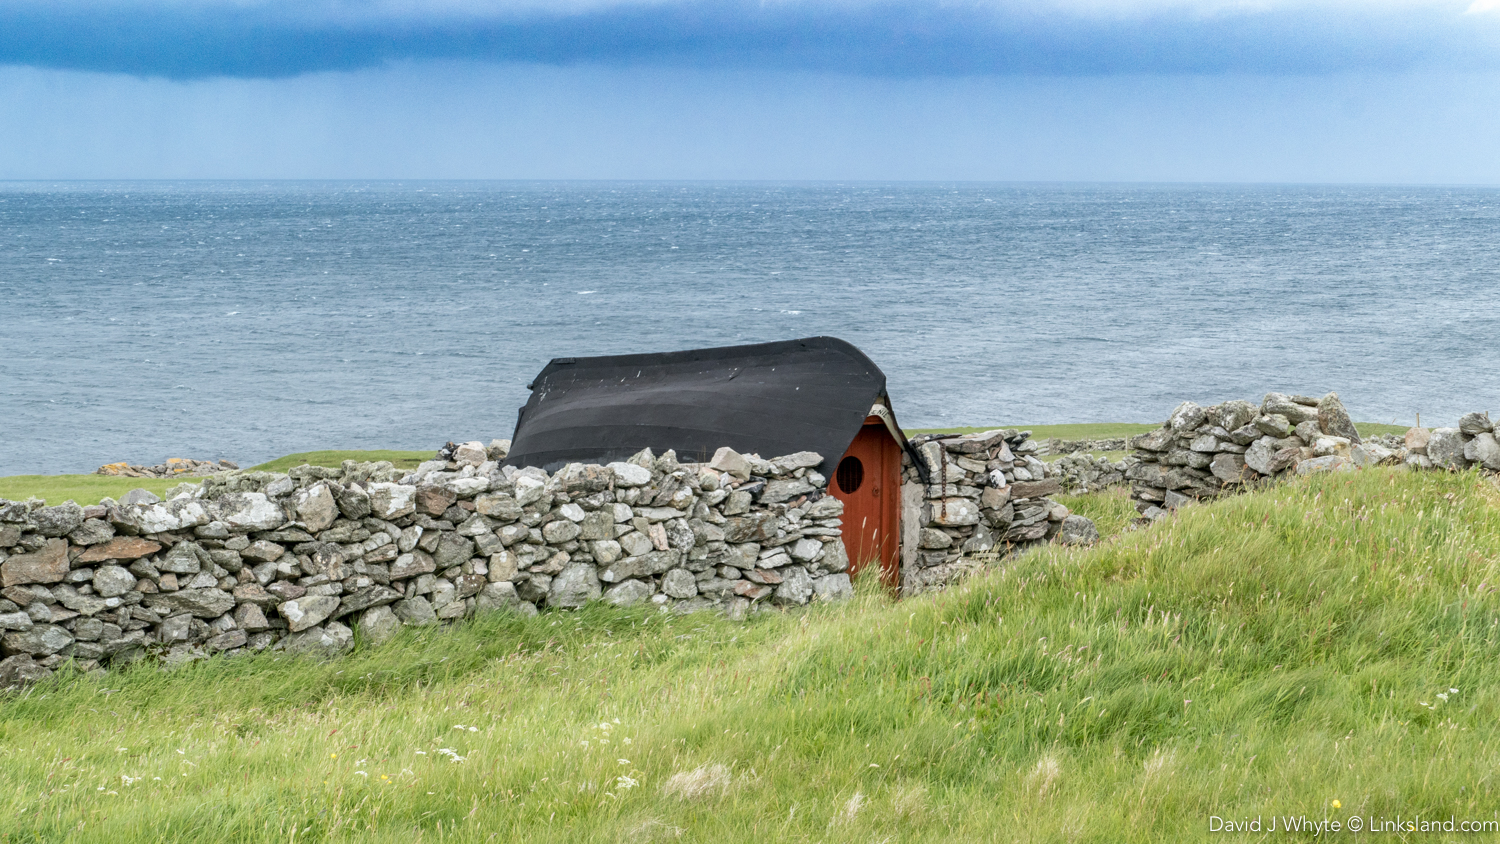 It looks like a Hobbit's Croft - a useful way to use an old boat...